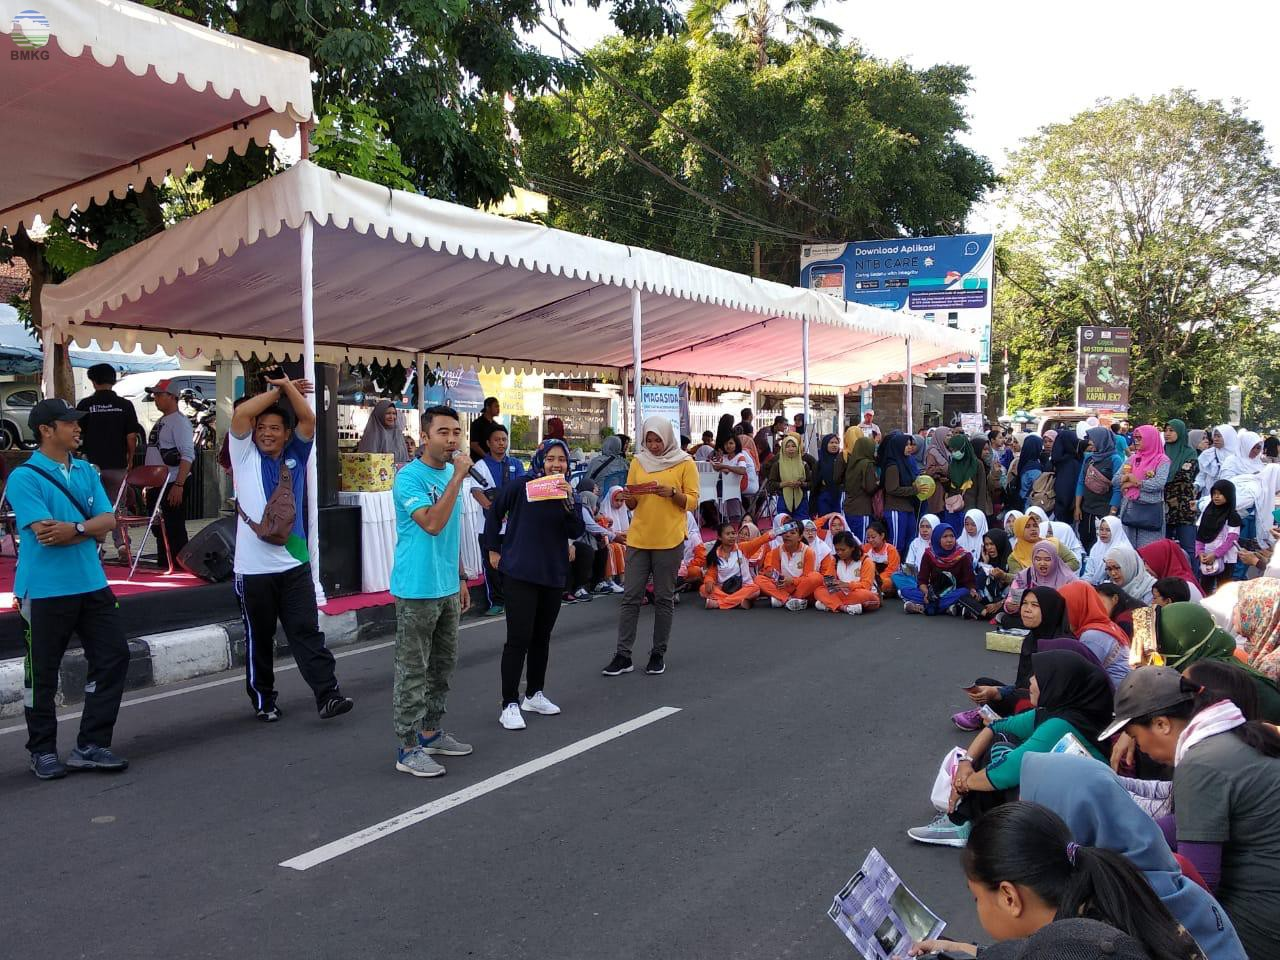 BMKG NTB Goes to Car Free Day